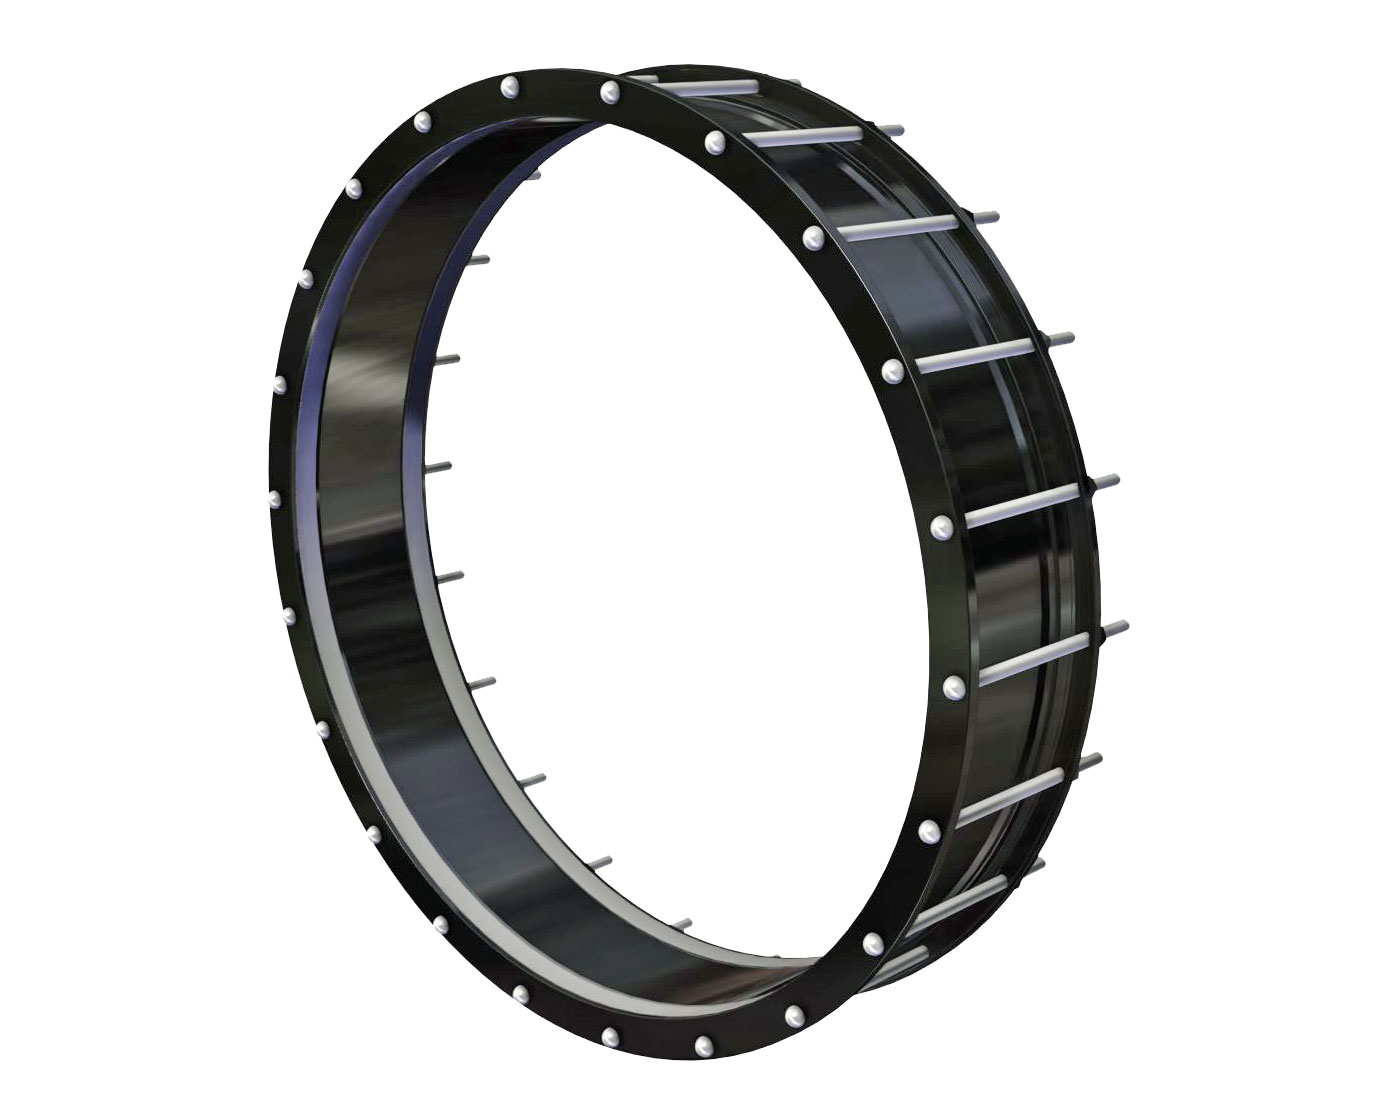 400 - Fabricated steel pipe coupling for pipe sizes 12 inch and larger.Nominal Sizes12 - 96 inches,larger sizes available upon request'Working PressureSee product submittalPipe CompatibilitySteel, cast iron, asbestos cement, plastic and other types of pipe